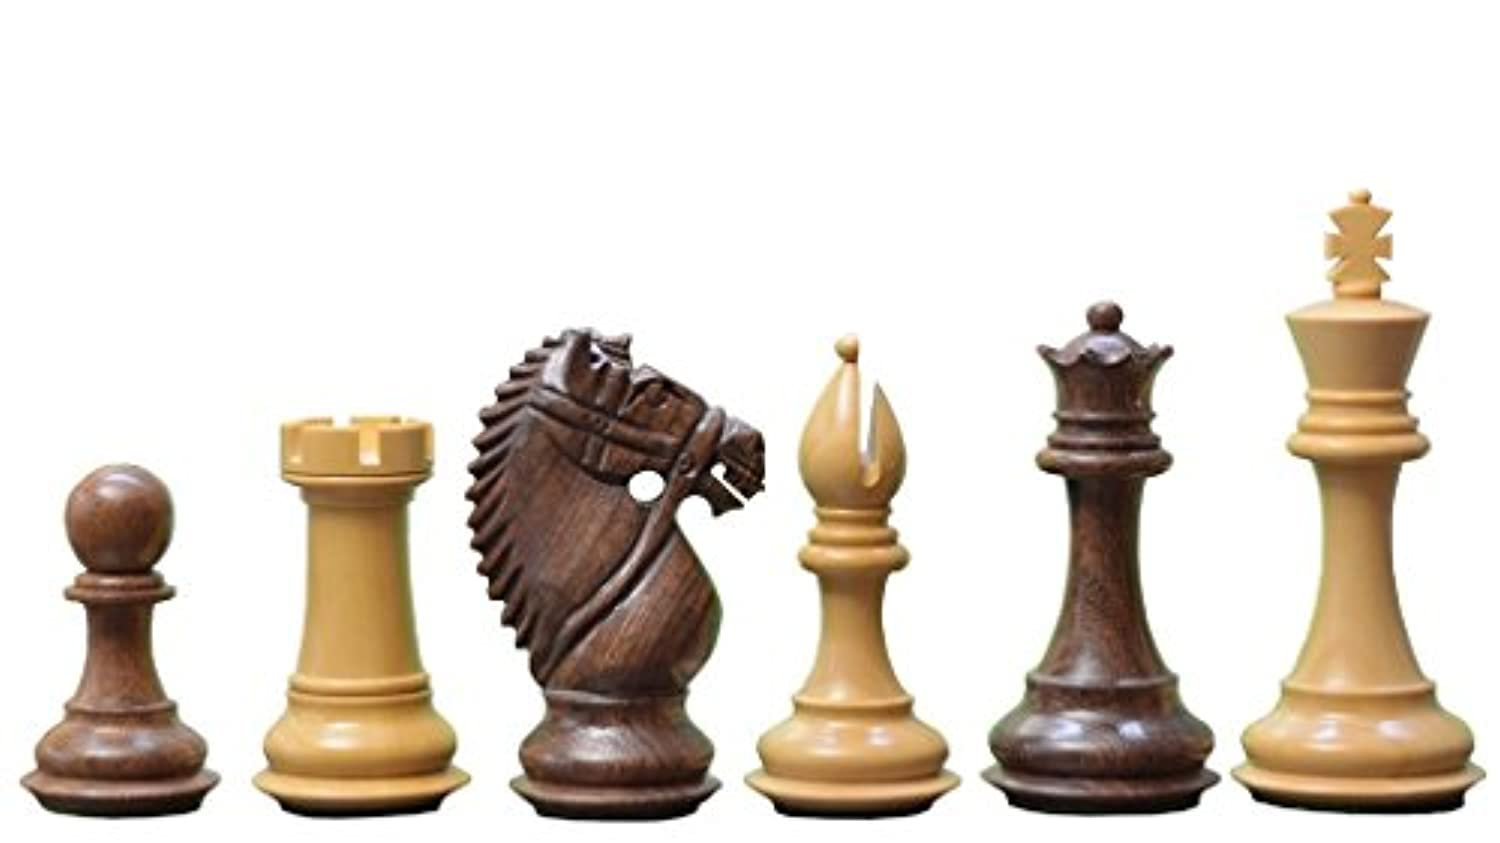 Chessbazaar The Bridle Knight Series Wooden Chess Pieces In Shesham & Box Wood